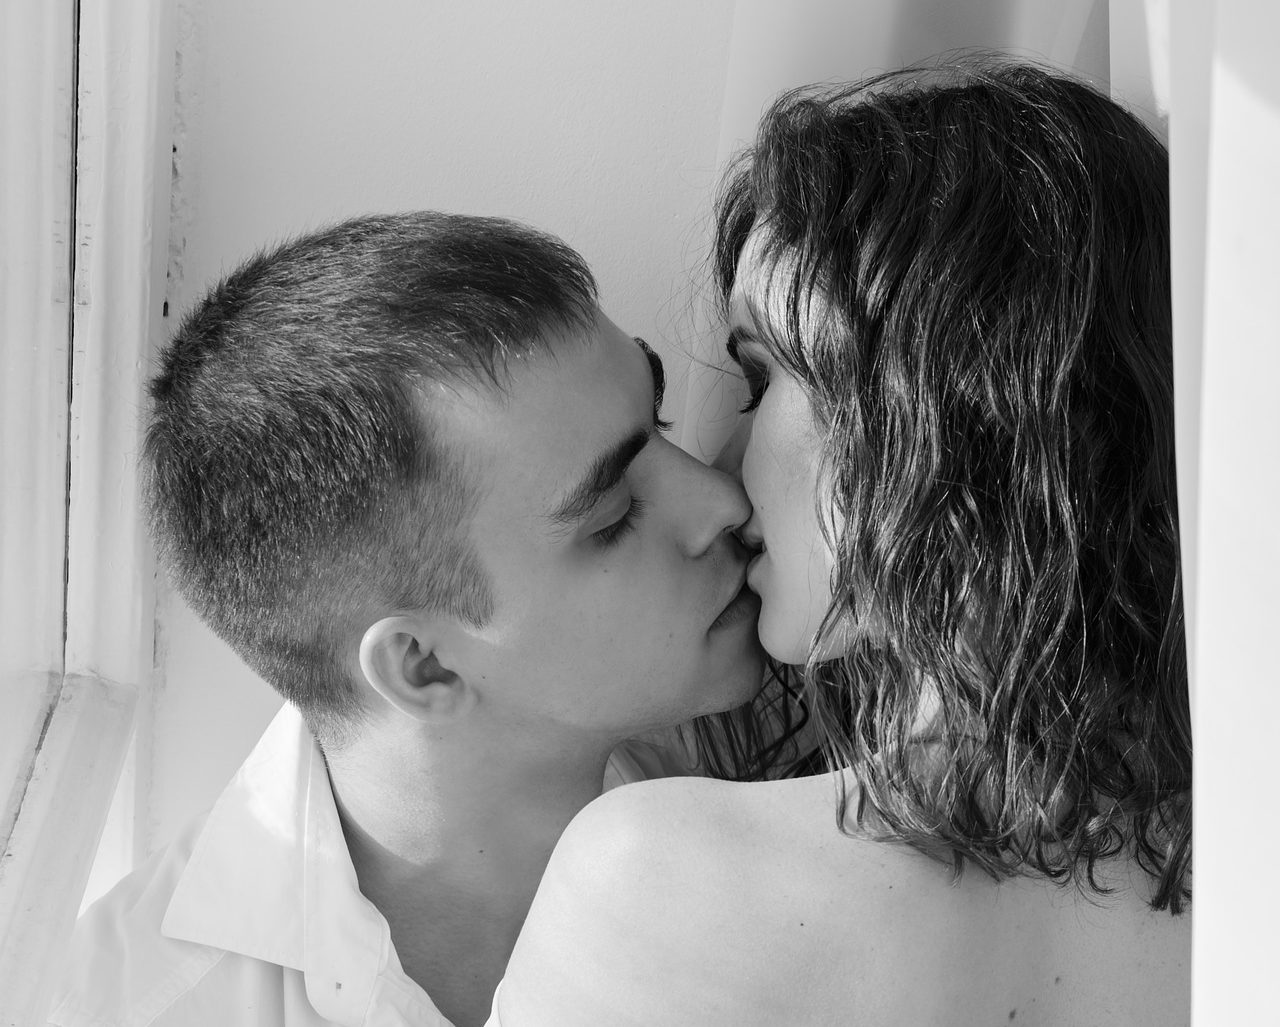 Art couple guide life love making passionate sex